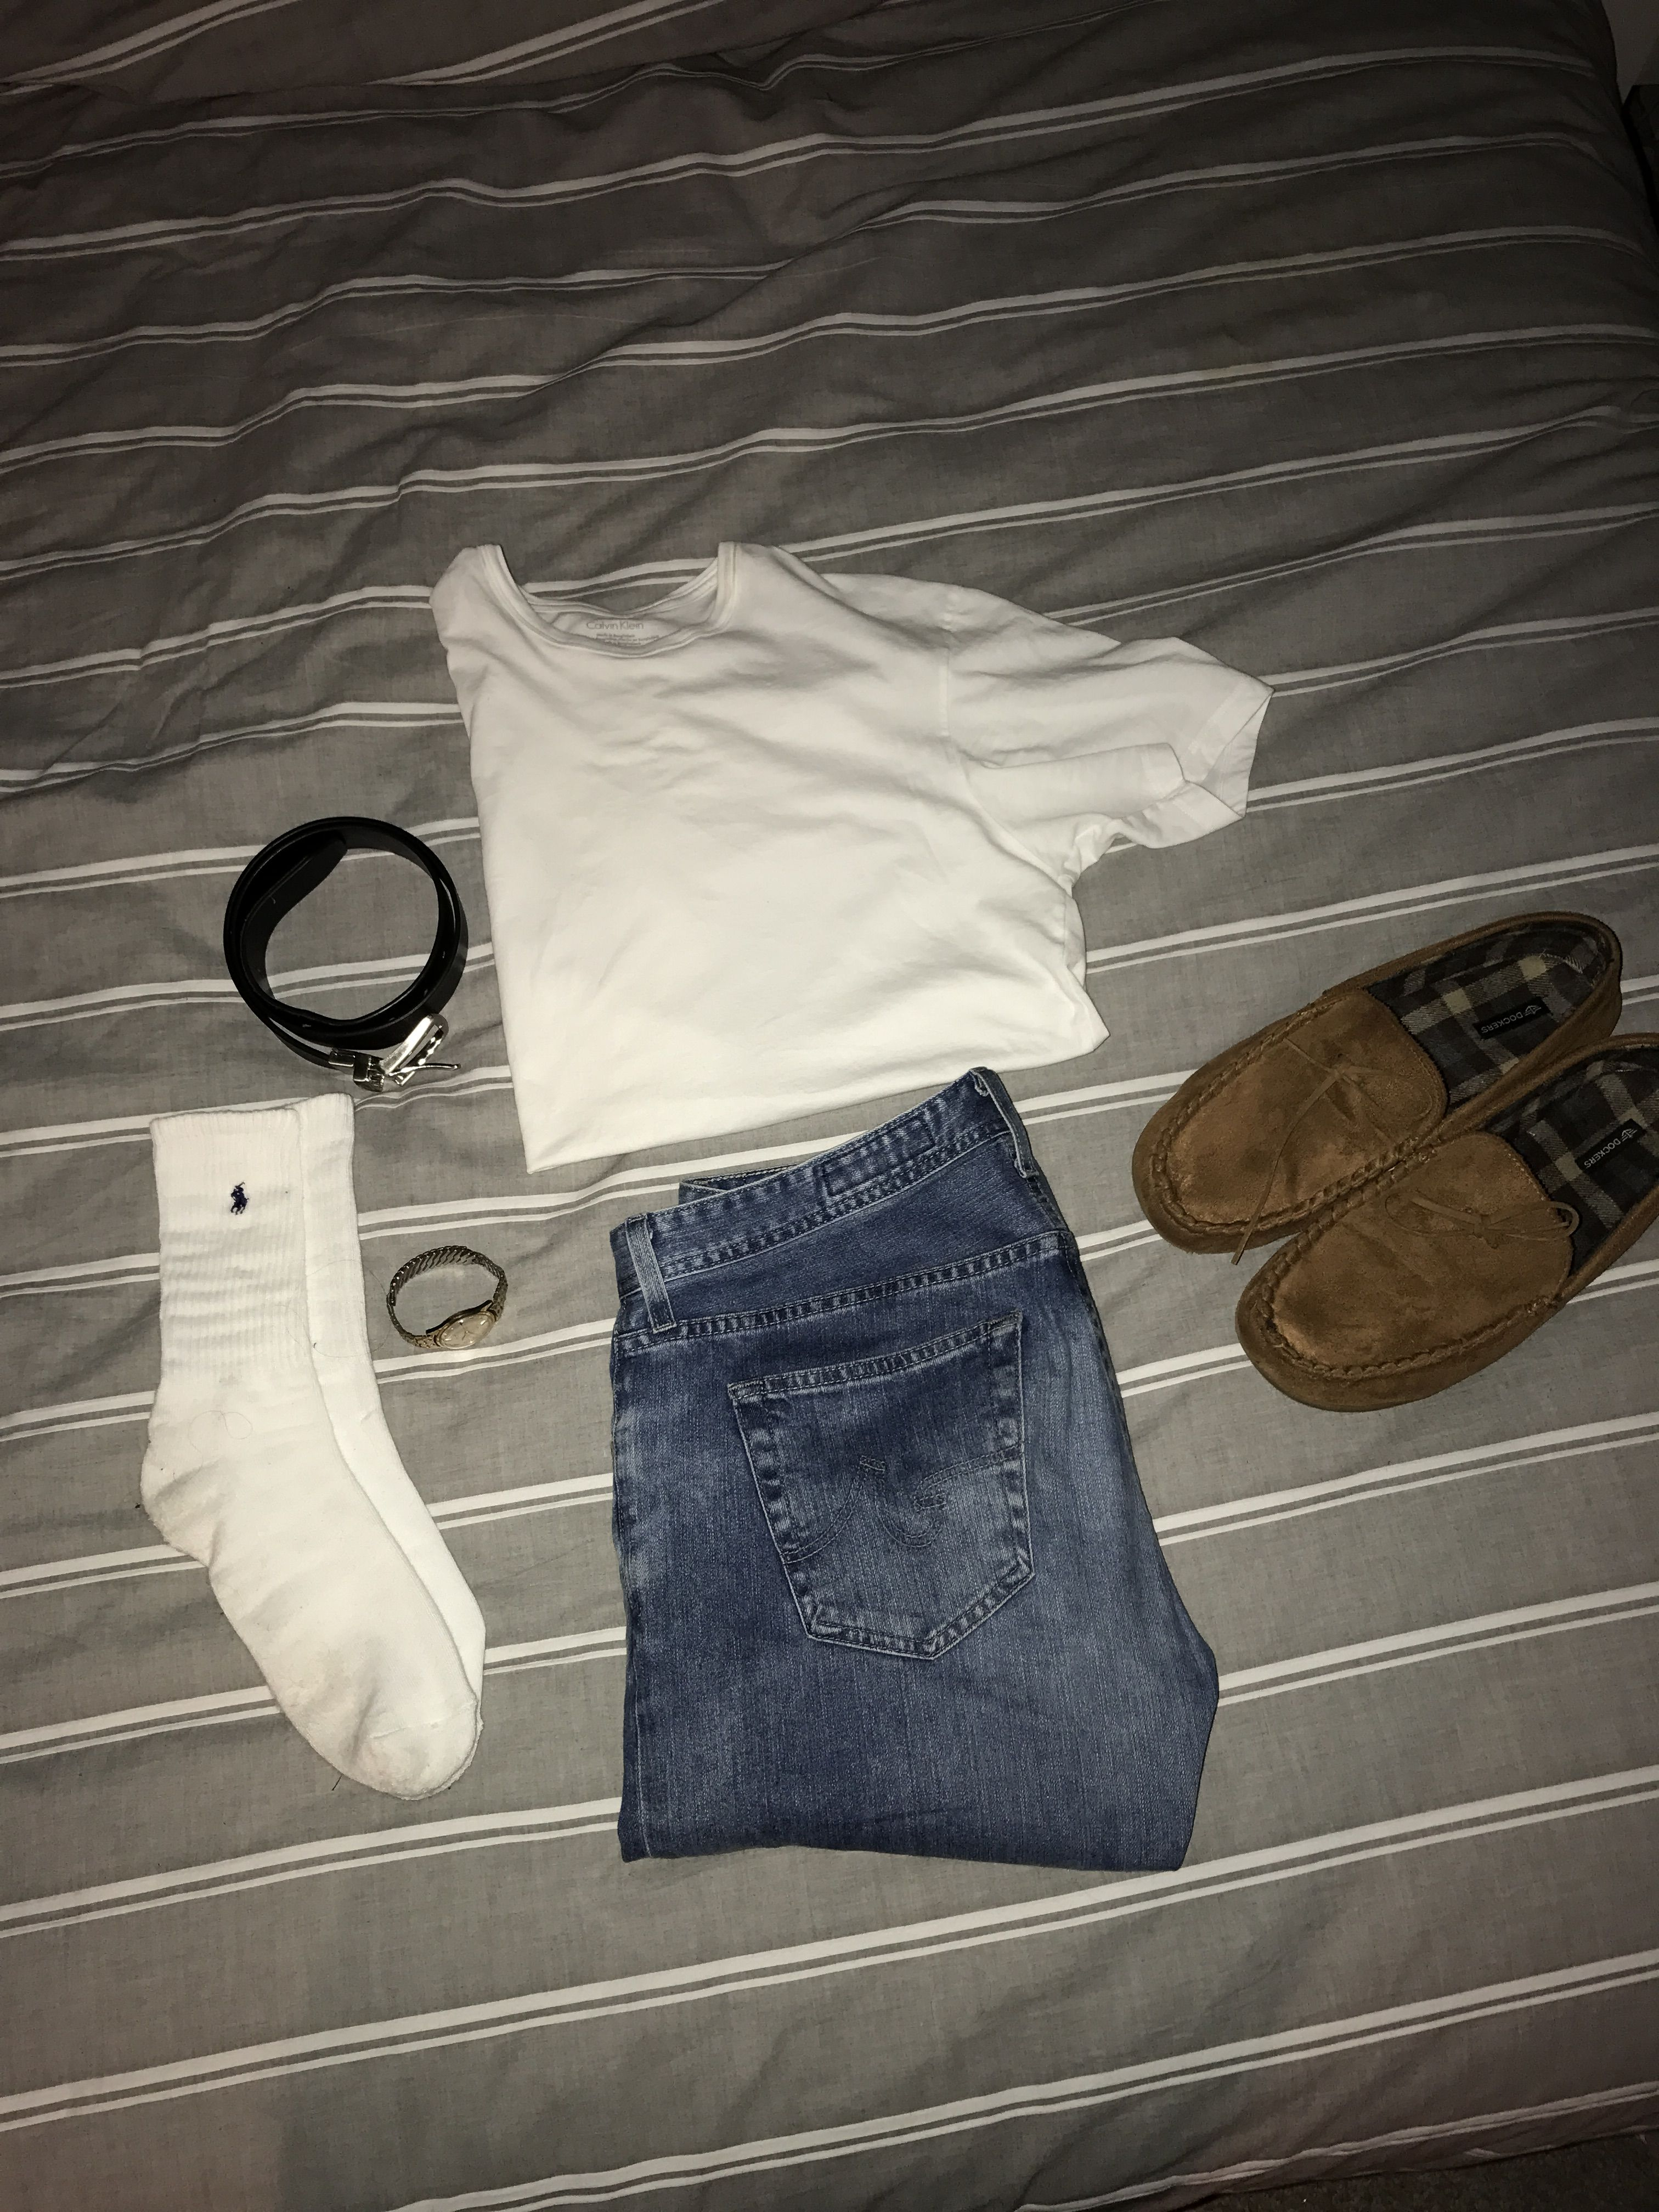 #simple #white #comfy #mocassins #poloralphlauren #AGdenim #CalvinKlein #Timex casual spring/summer ideas